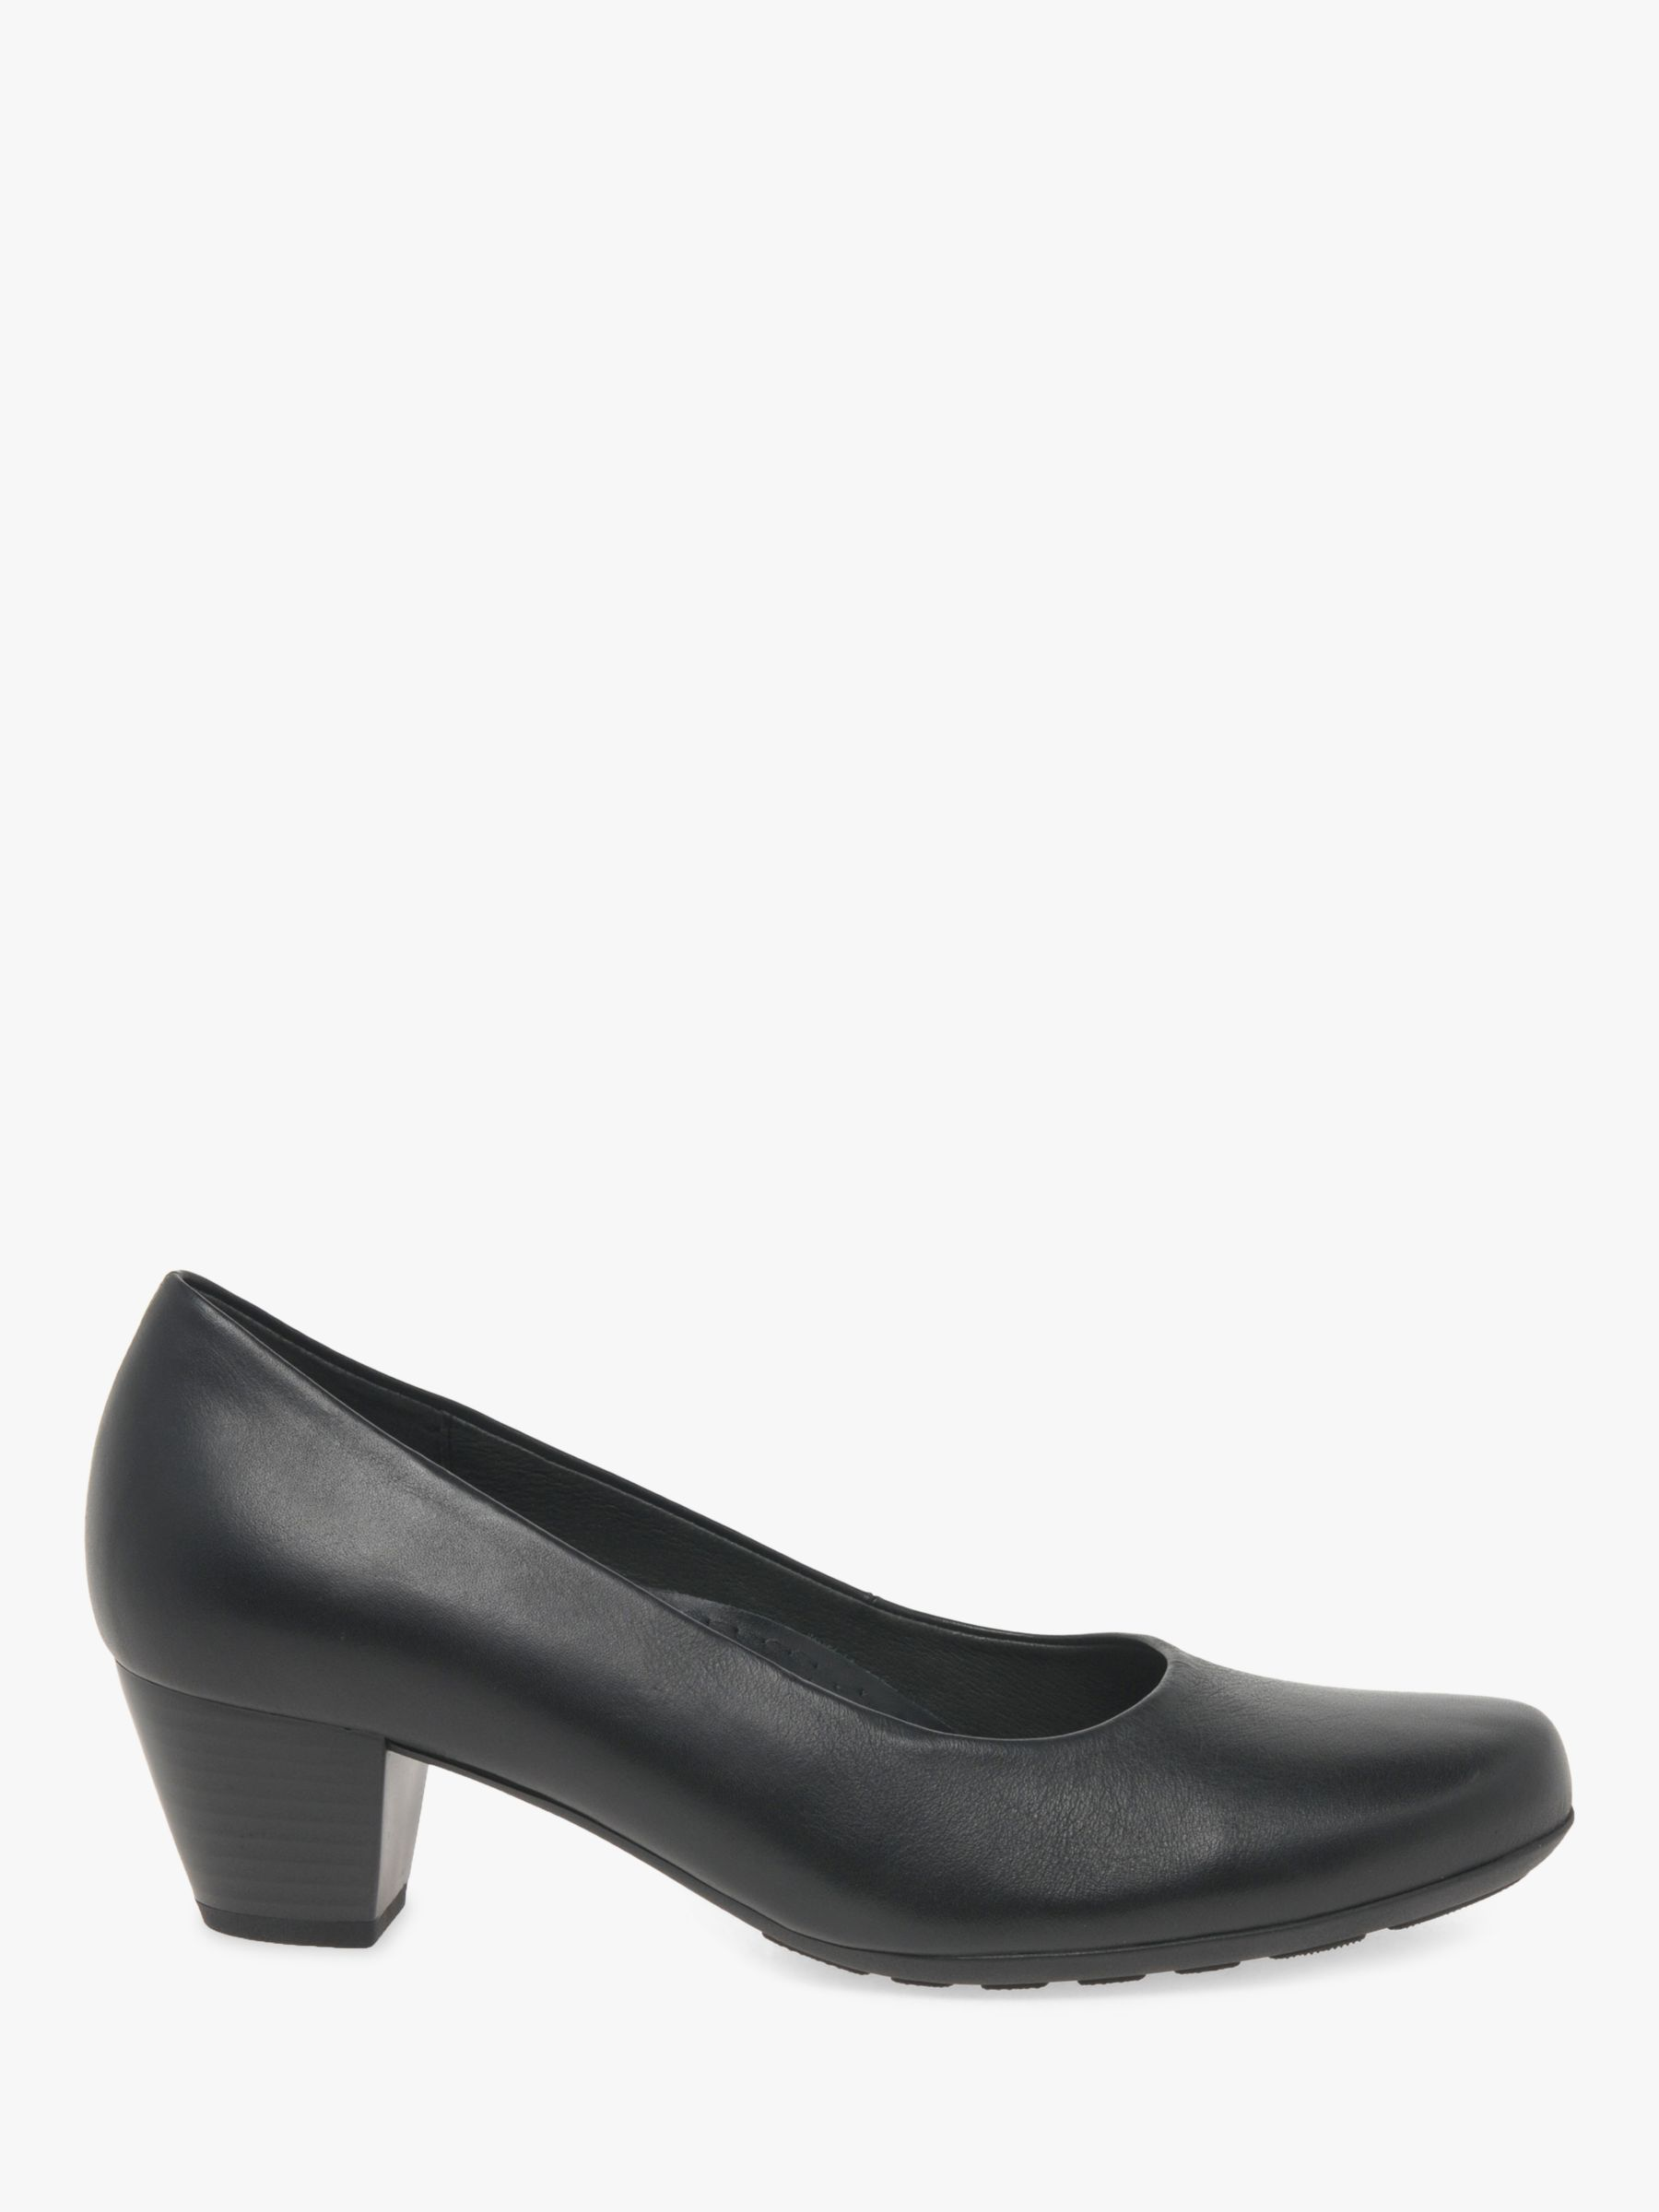 Gabor Gabor Brambling Wide Fit Leather Court Shoes, Black